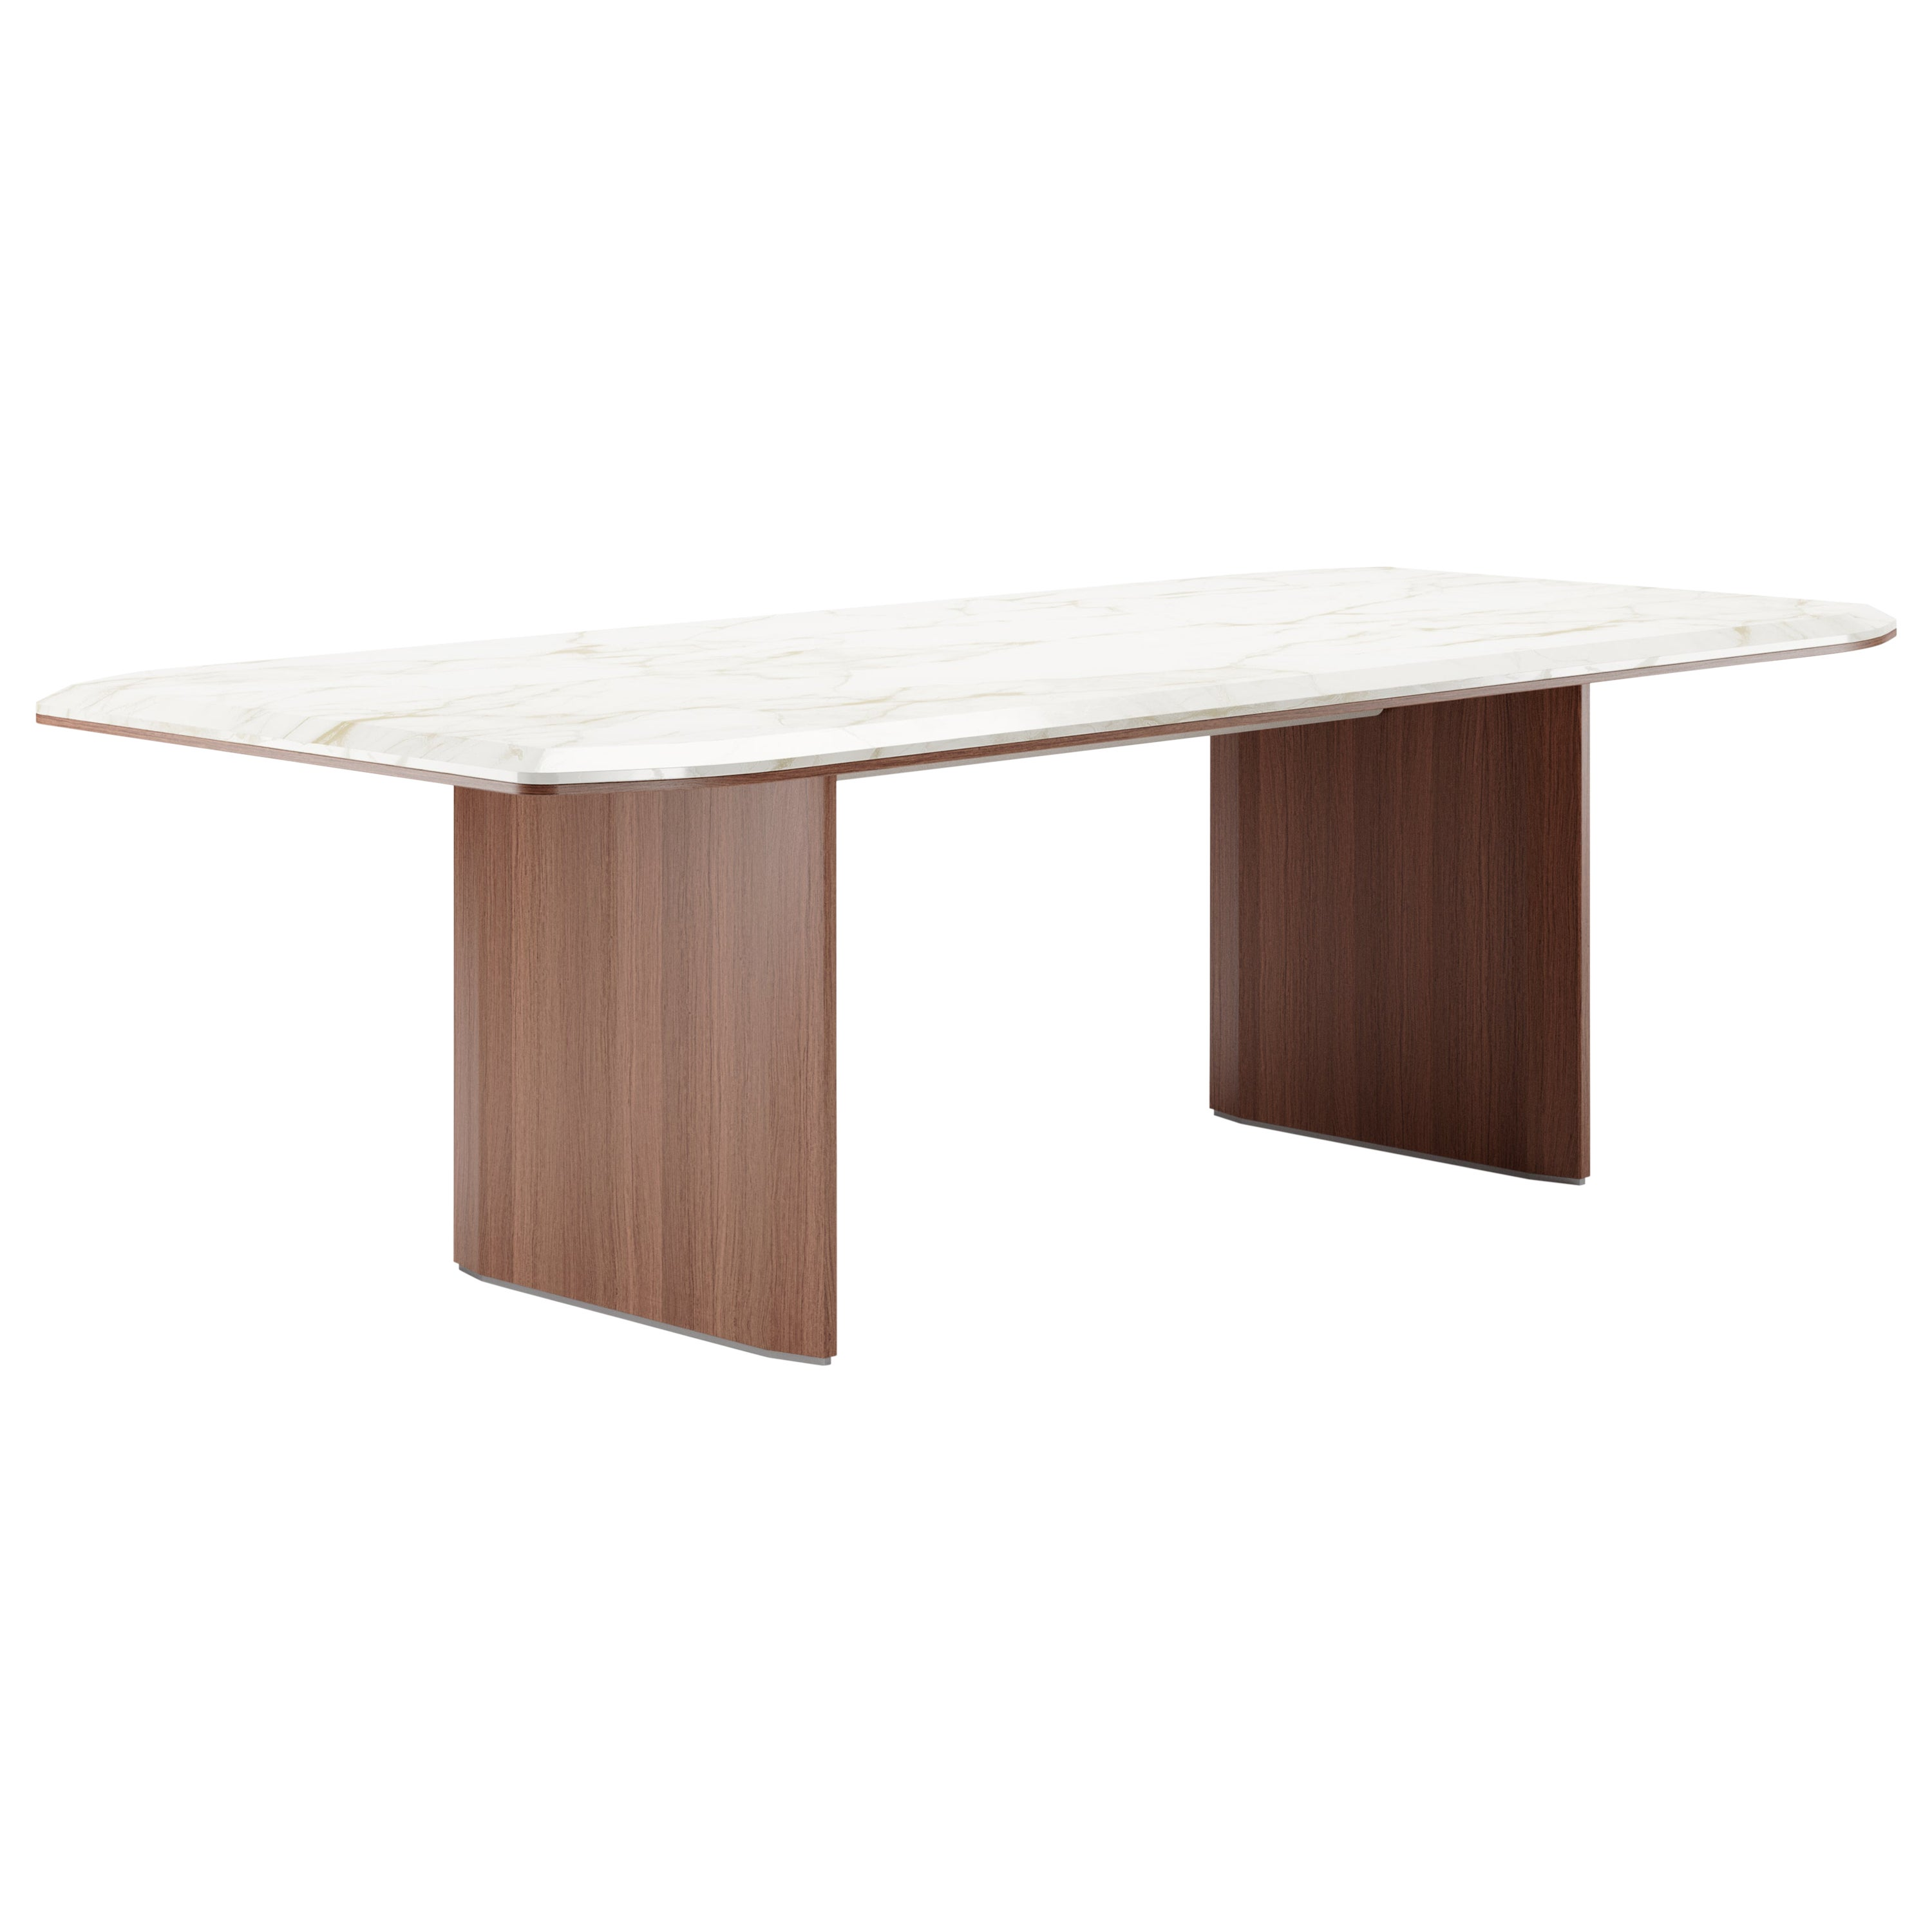 Contemporary Dining Table by Fabio Arcaini Marble Wood Lacquered